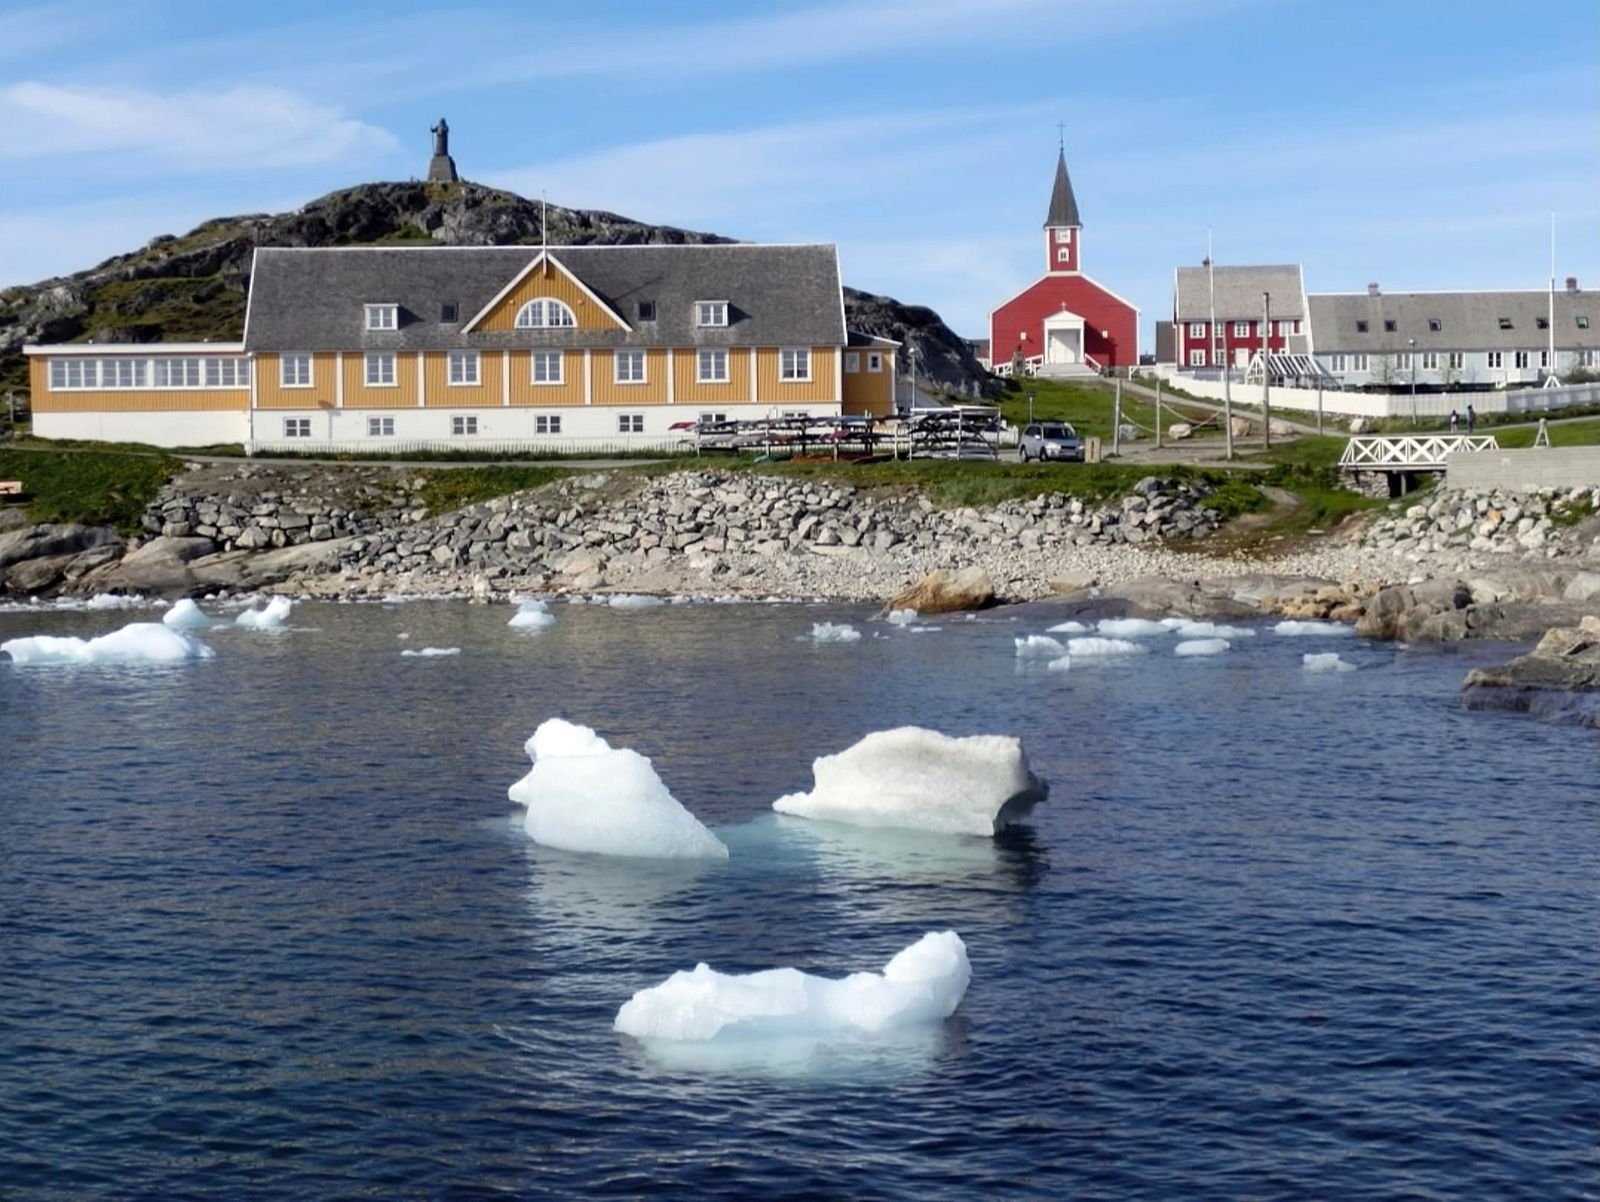 In this image taken on June 13, 2019 small pieces of ice float in the water off the shore in Nuuk, Greenland. (AP Photo/Sandy Virgo)